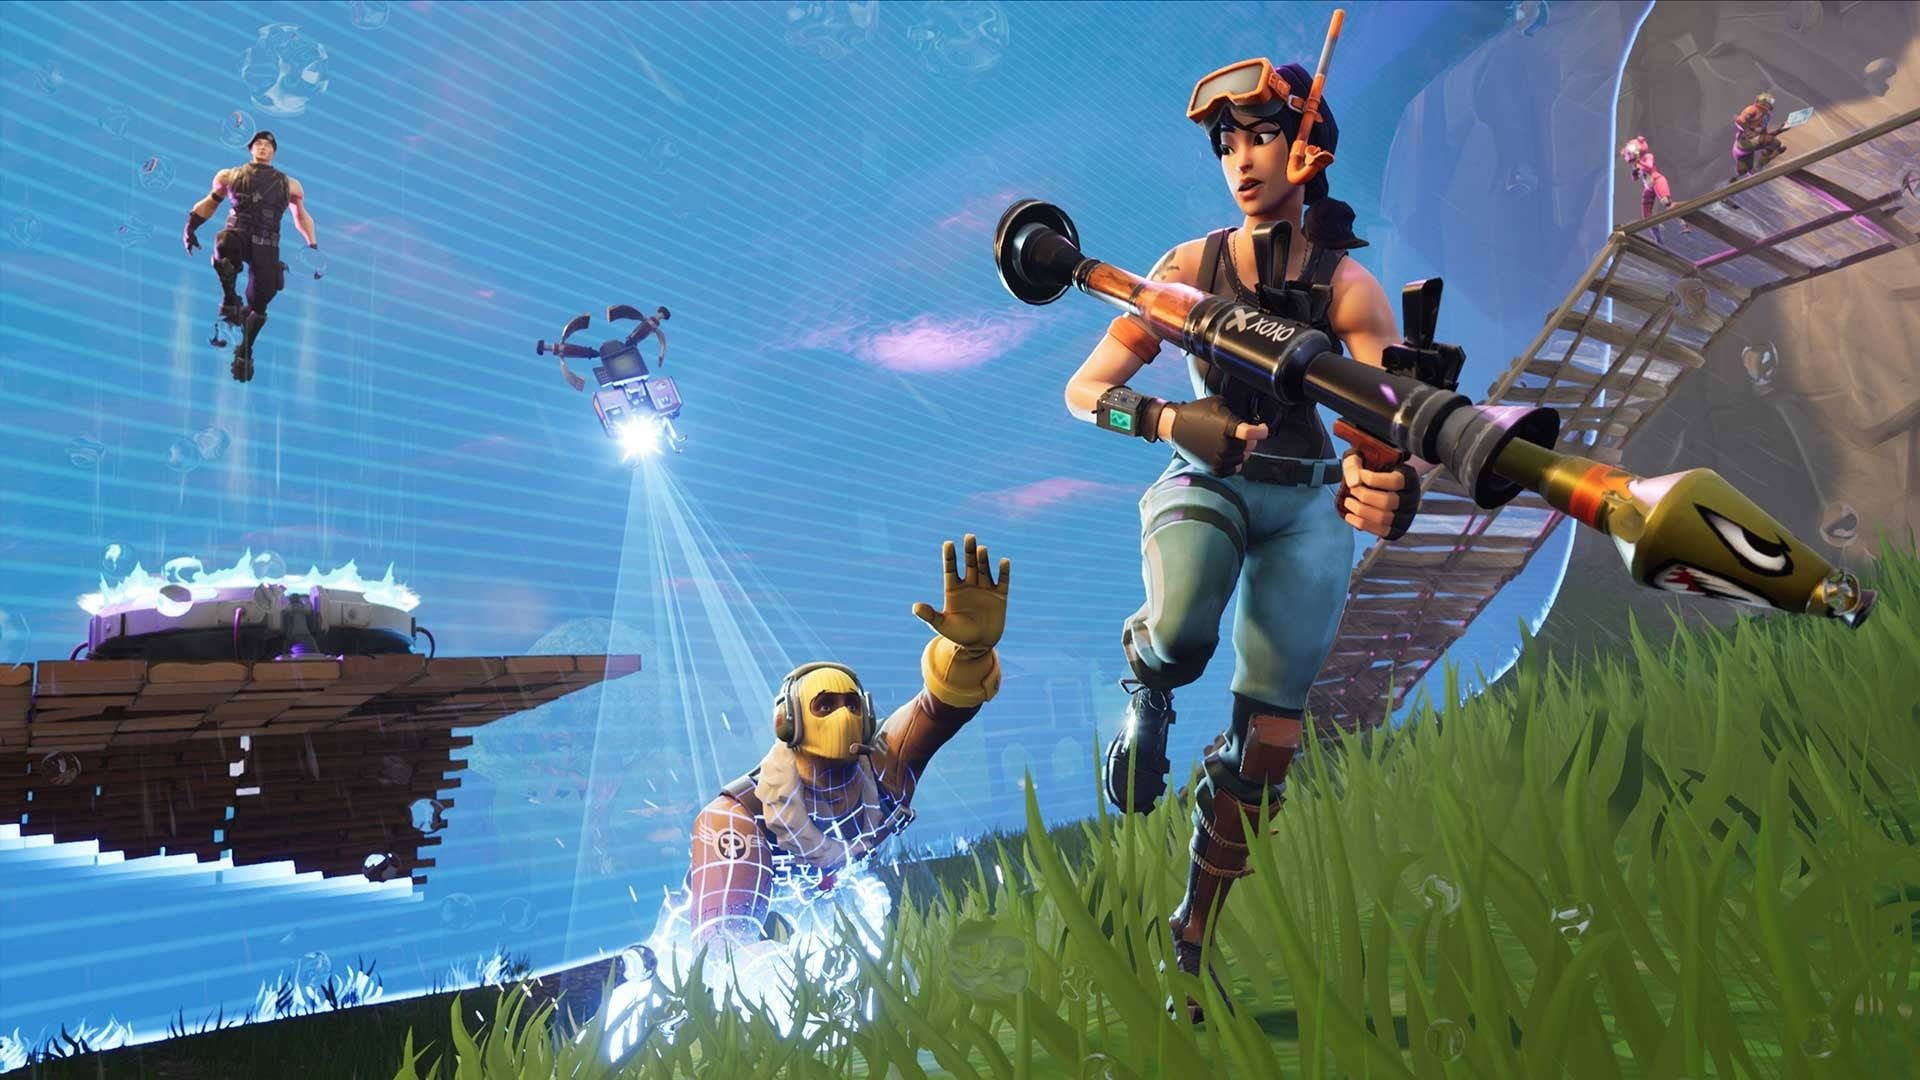 Fortnite Guide How To Complete The Fortnitemares Challenges